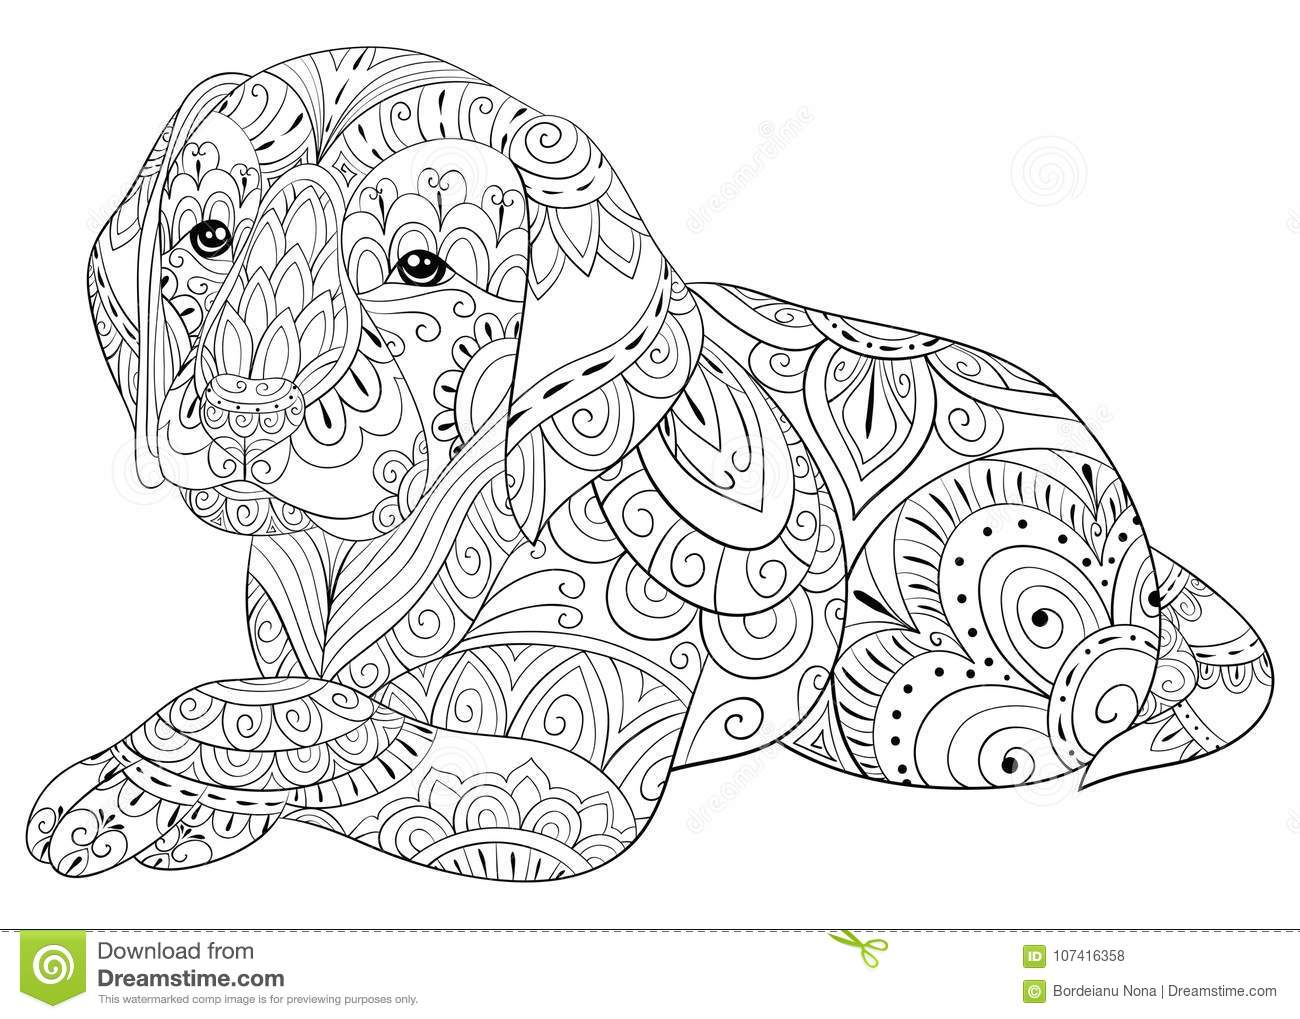 Adult Coloring Page A Cute Dog For Relaxing Zen Art Style